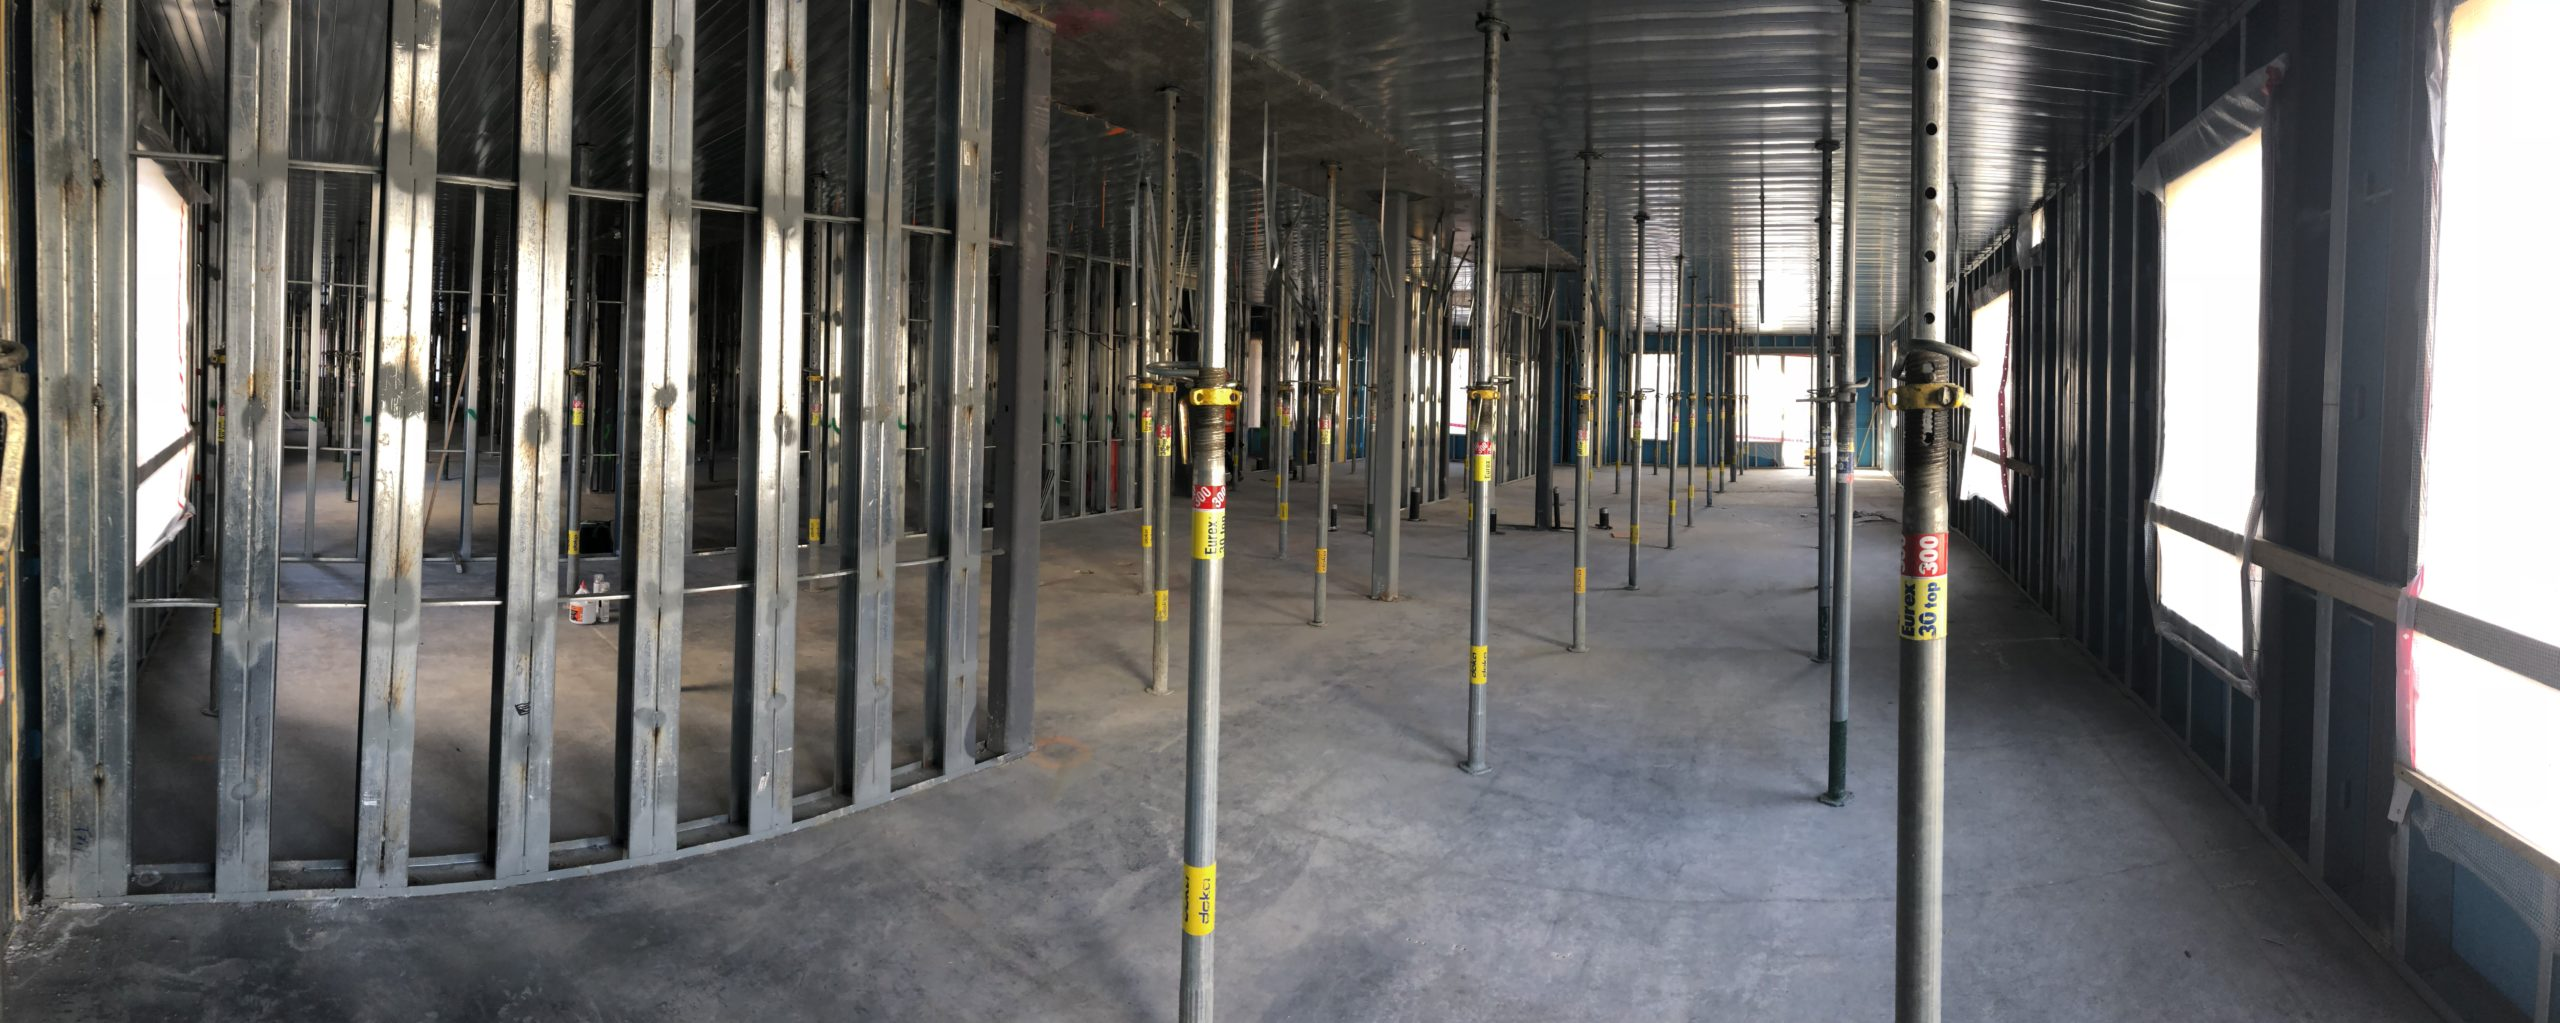 South Valley Prefab prefabricated CFS interior load-bearing wall panels